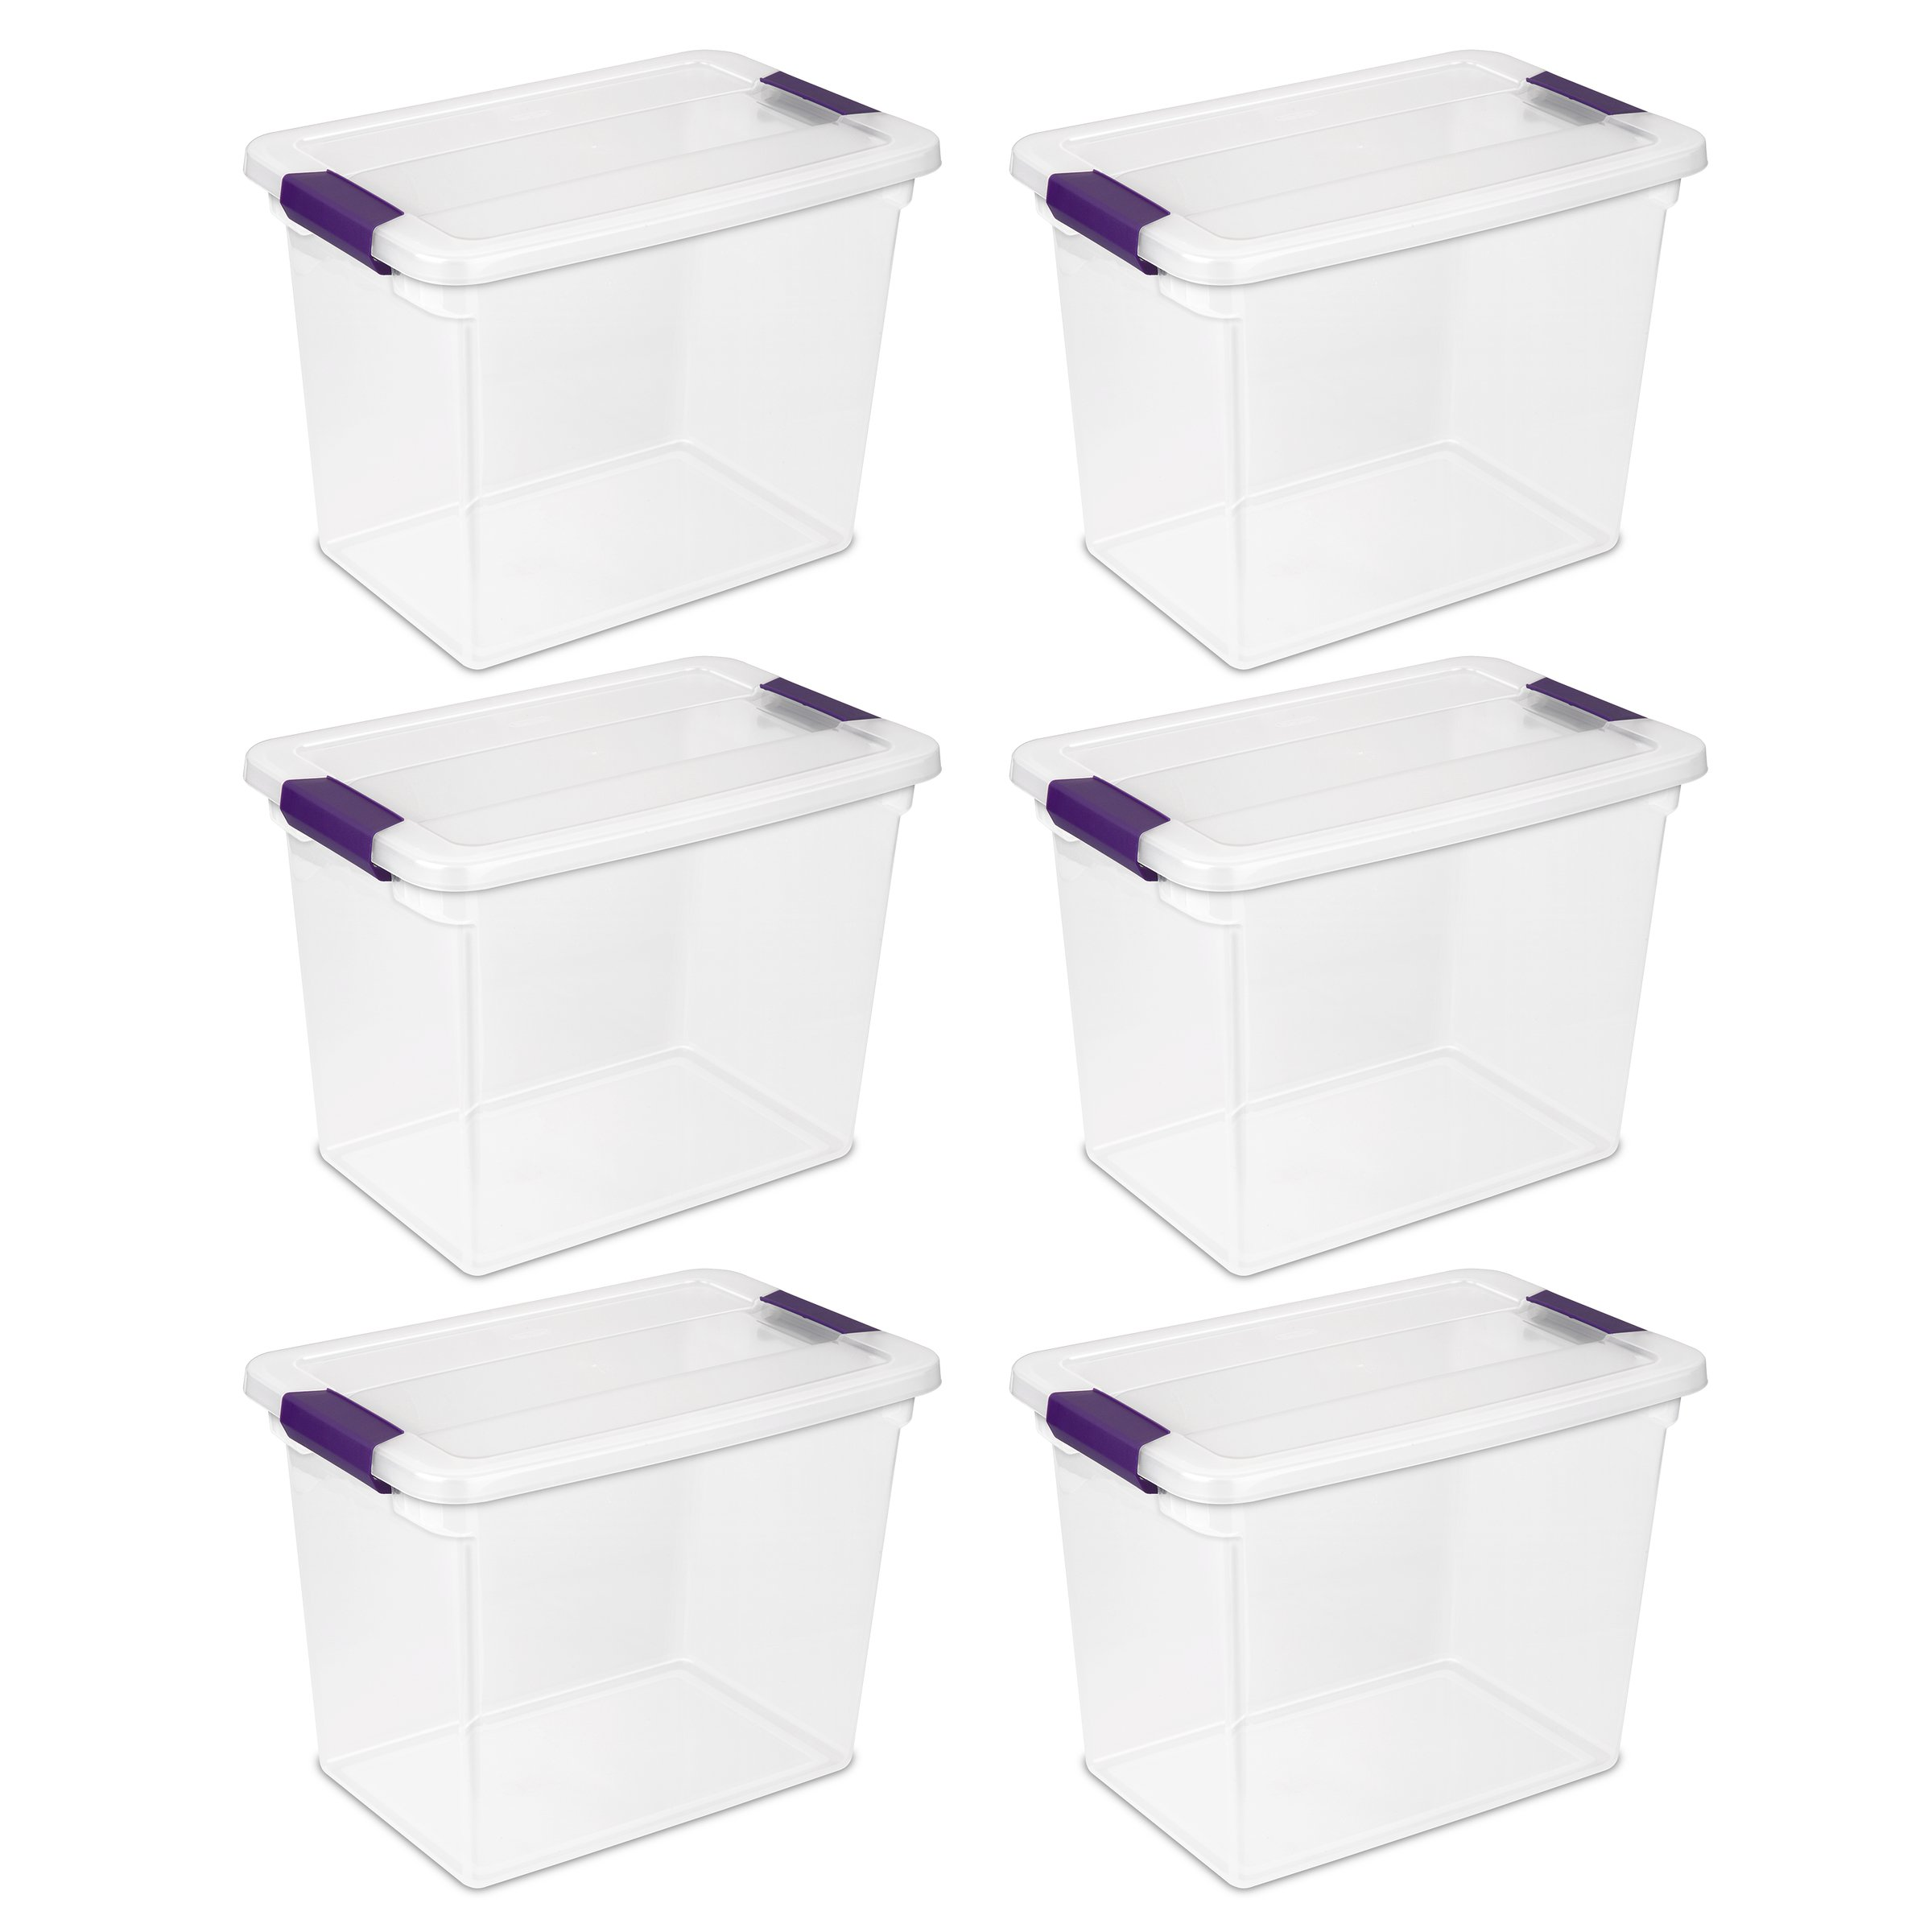 Sterilite 17631706 27 Quart/26 Liter ClearView Latch Box, Clear with Sweet Plum Latches, 6-Pack by STERILITE